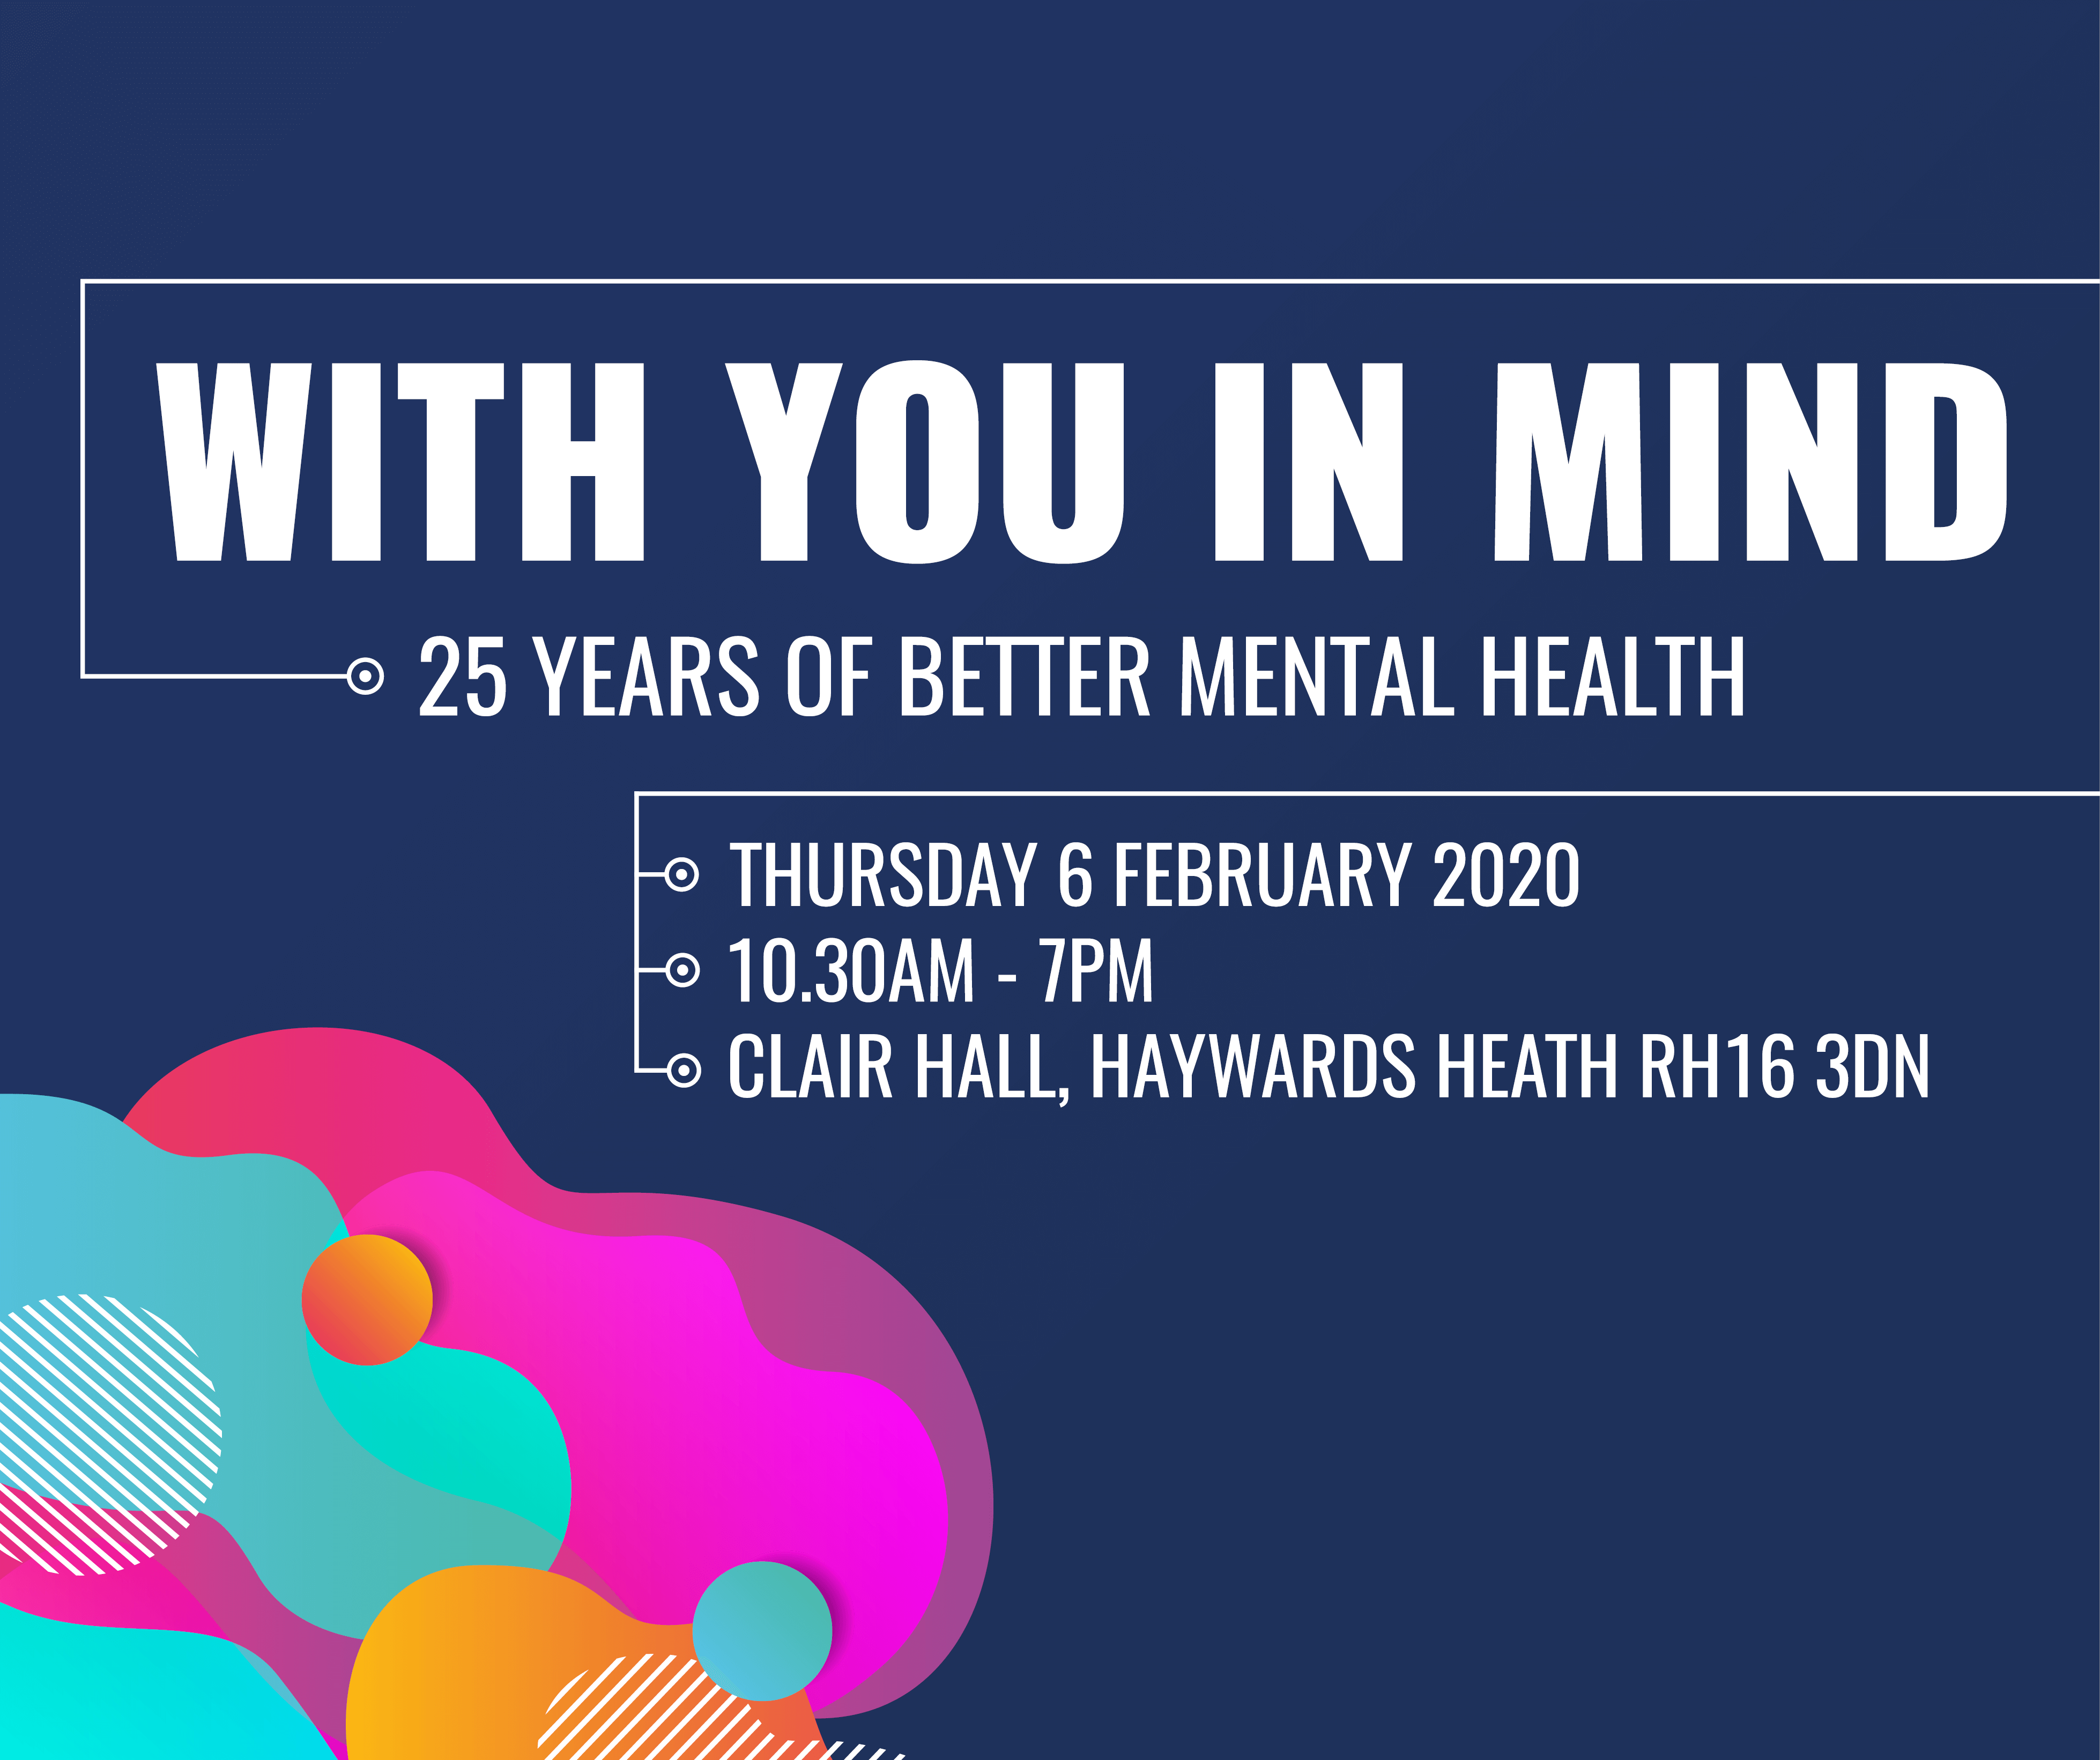 With You In Mind event: February 6th 2020